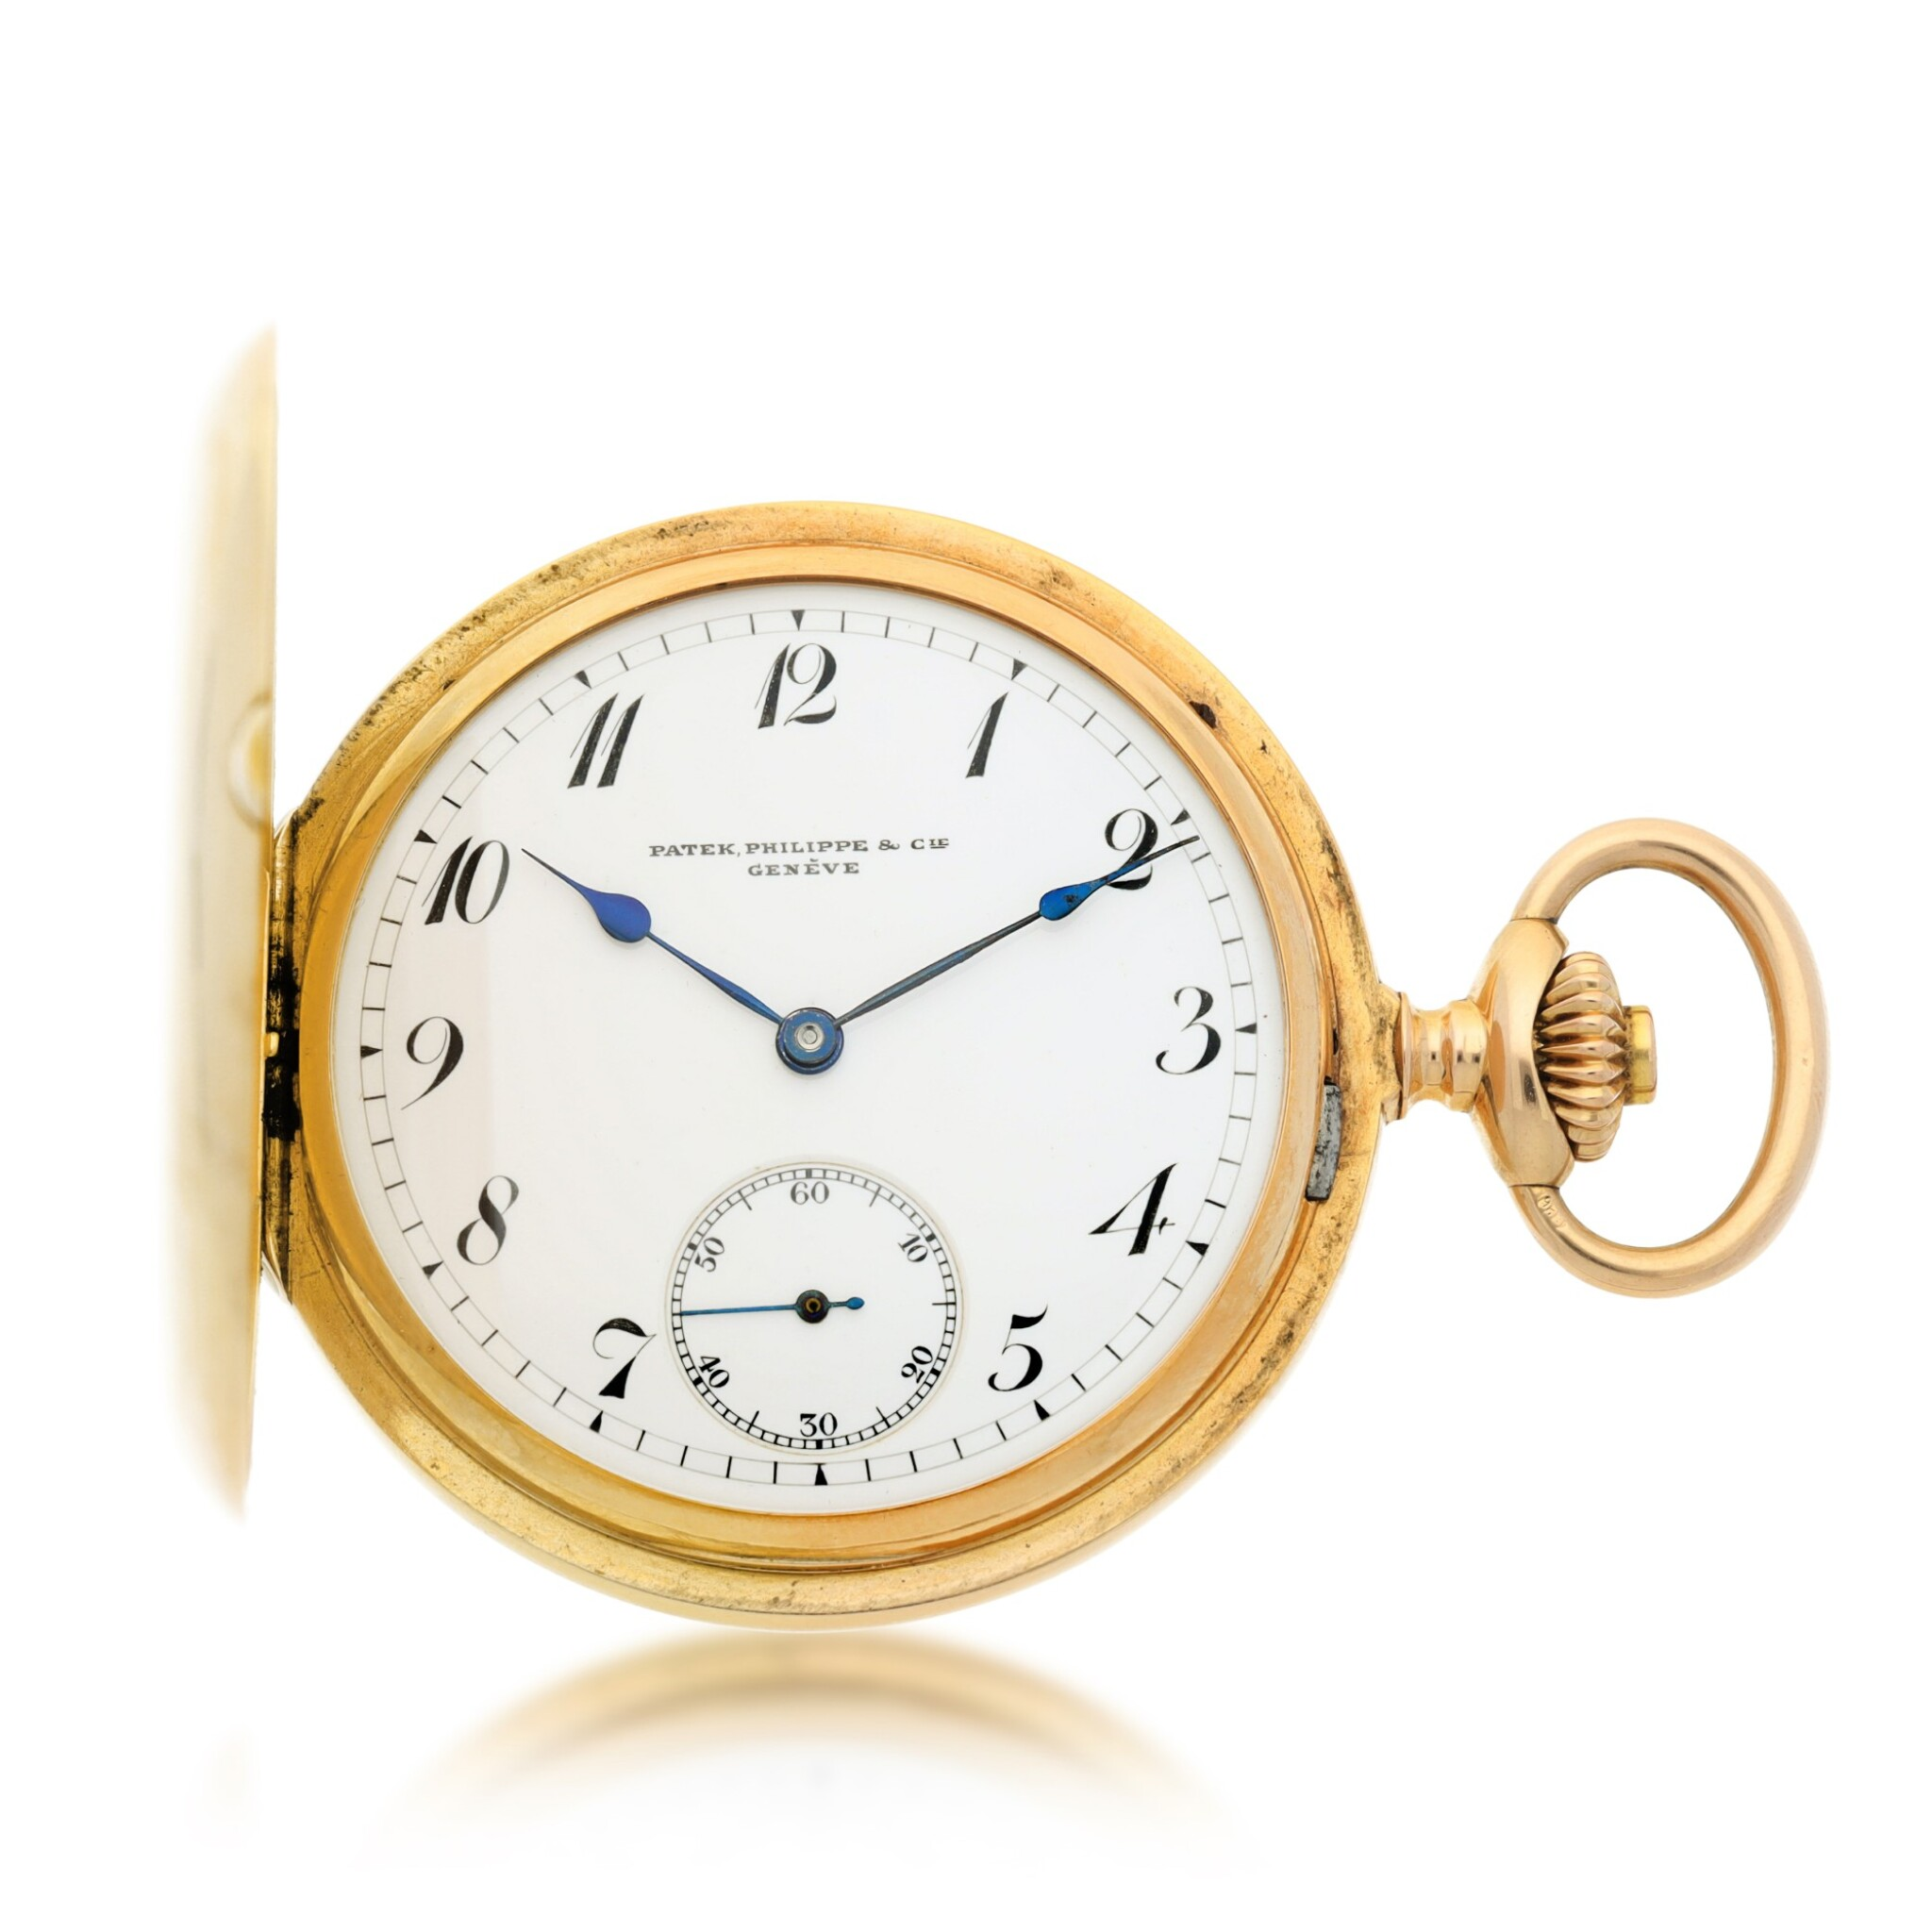 View full screen - View 1 of Lot 35. PATEK PHILIPPE |  A PINK GOLD HUNTING CASED WATCH, MADE IN 1902.